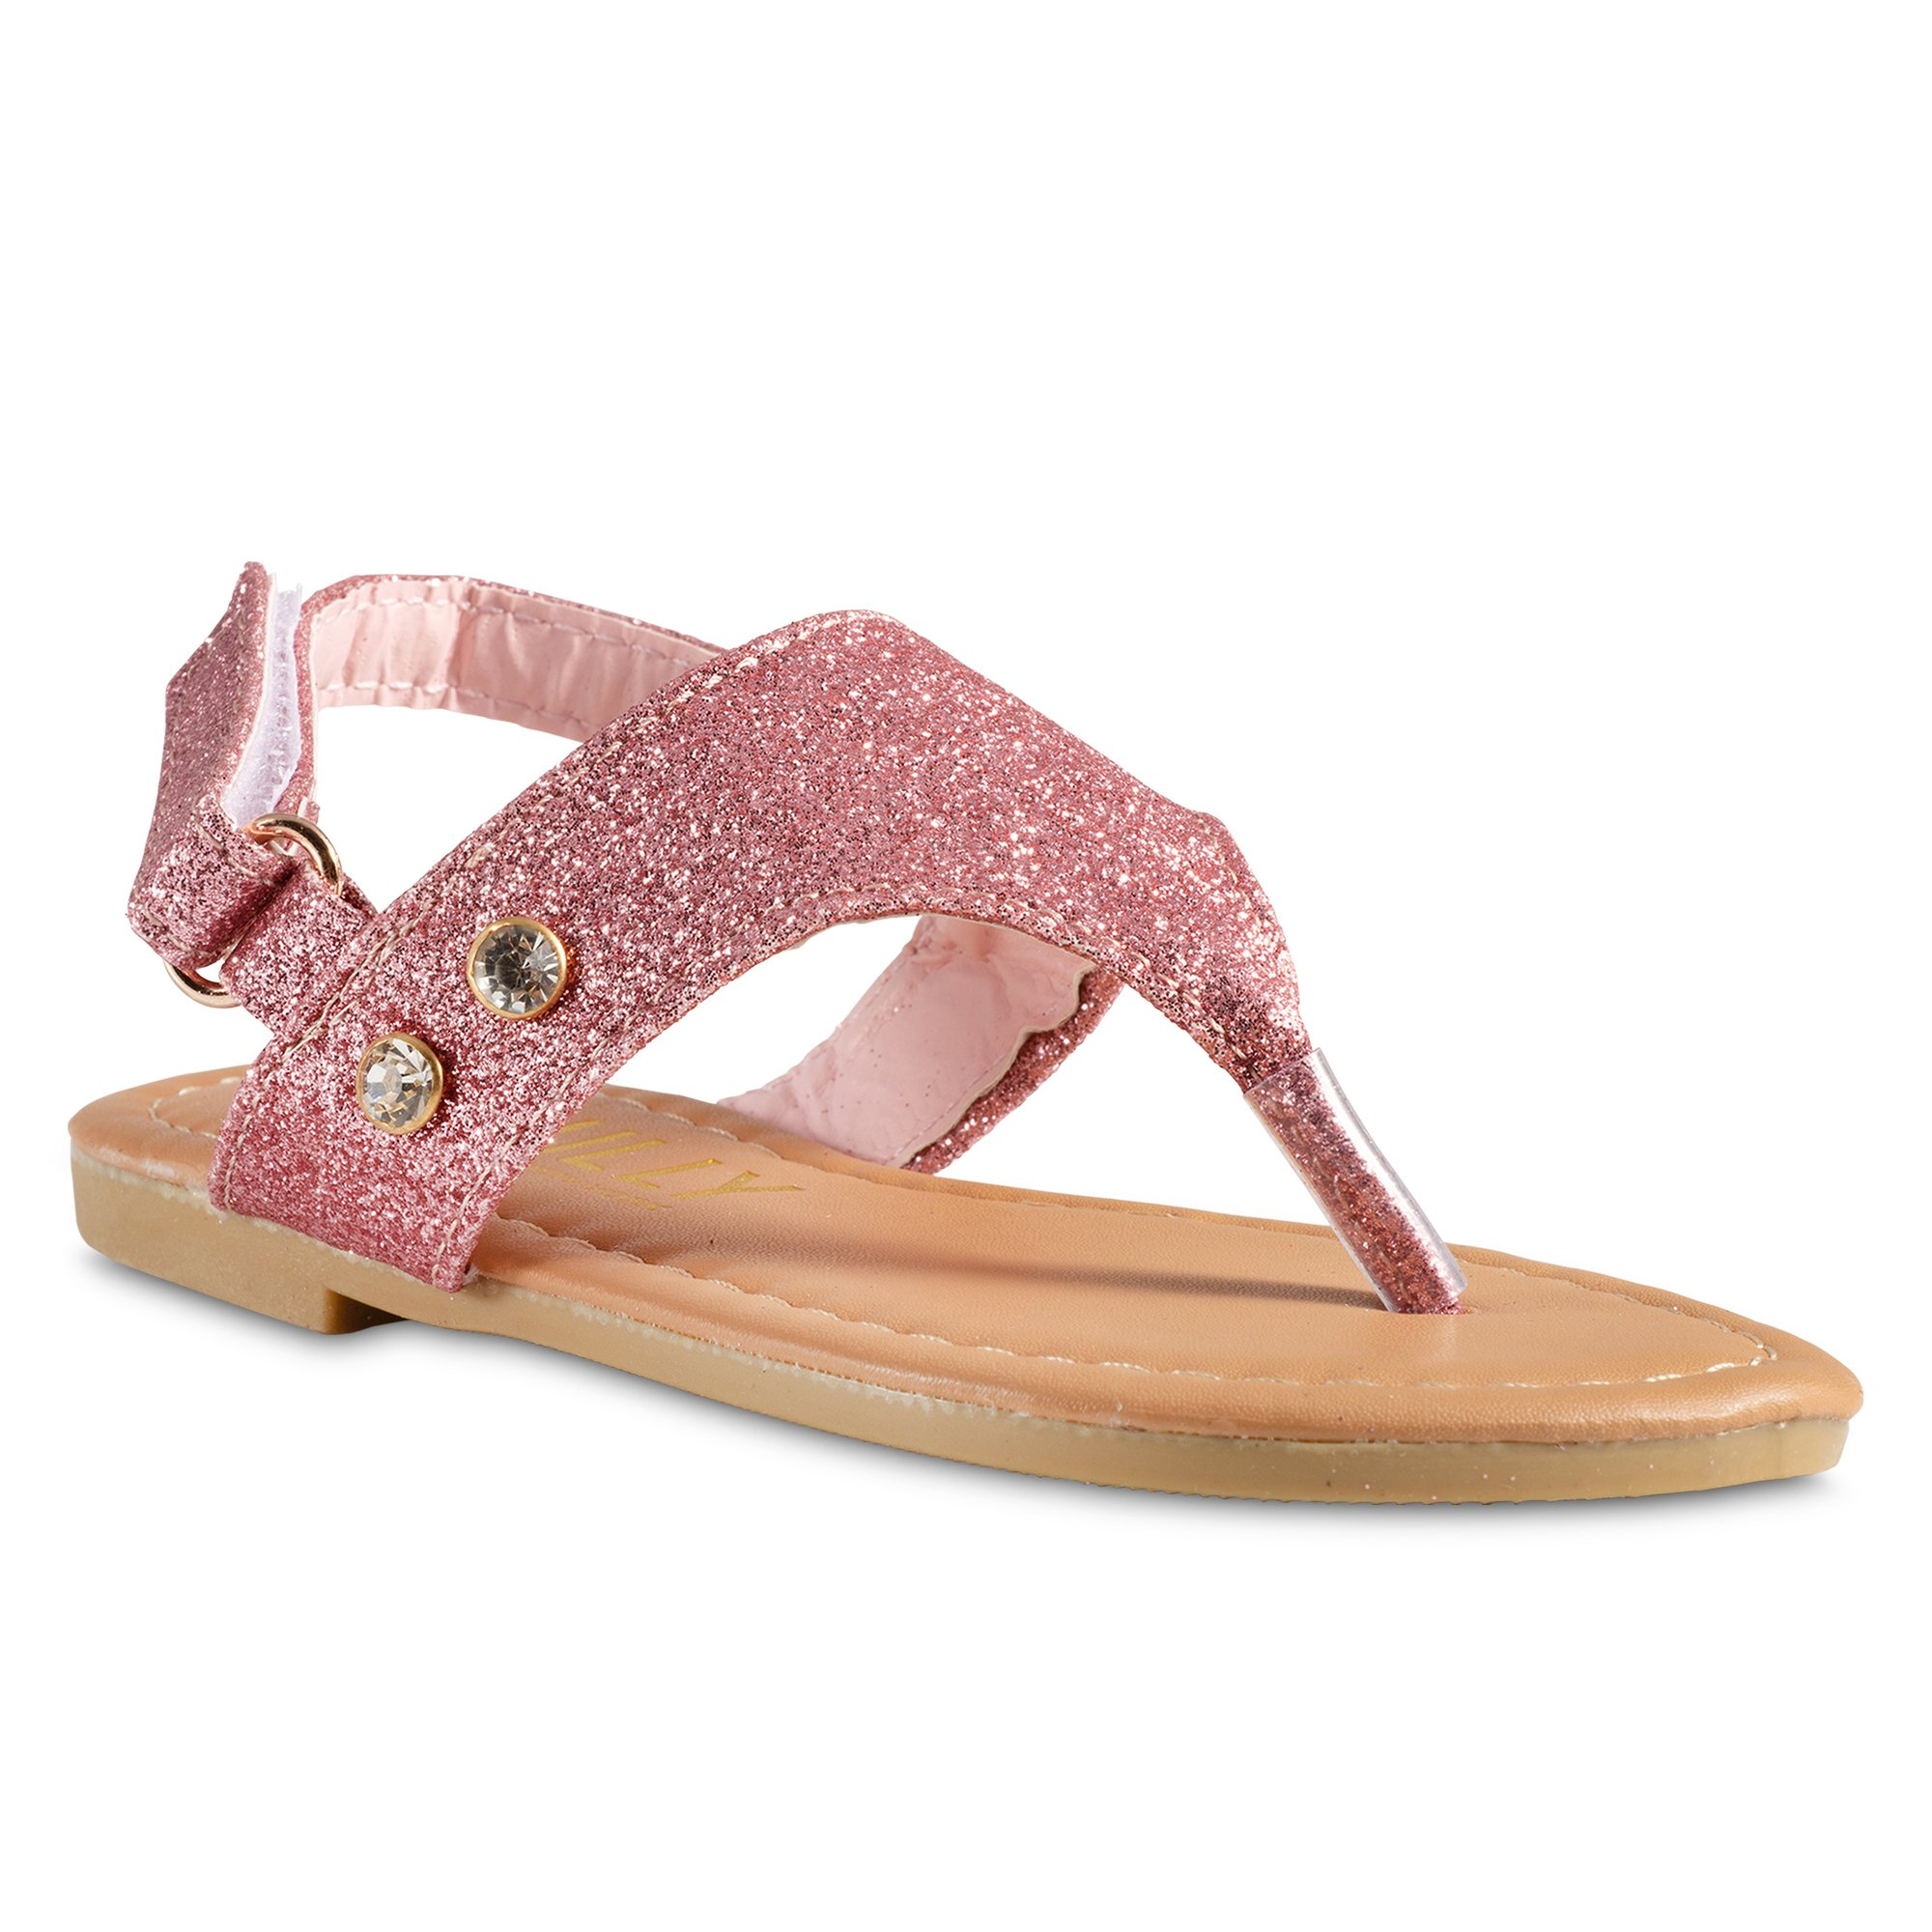 Chillipop Glitter PVC Thong Sandals Toddler Girls, Available in All Kid Sizes